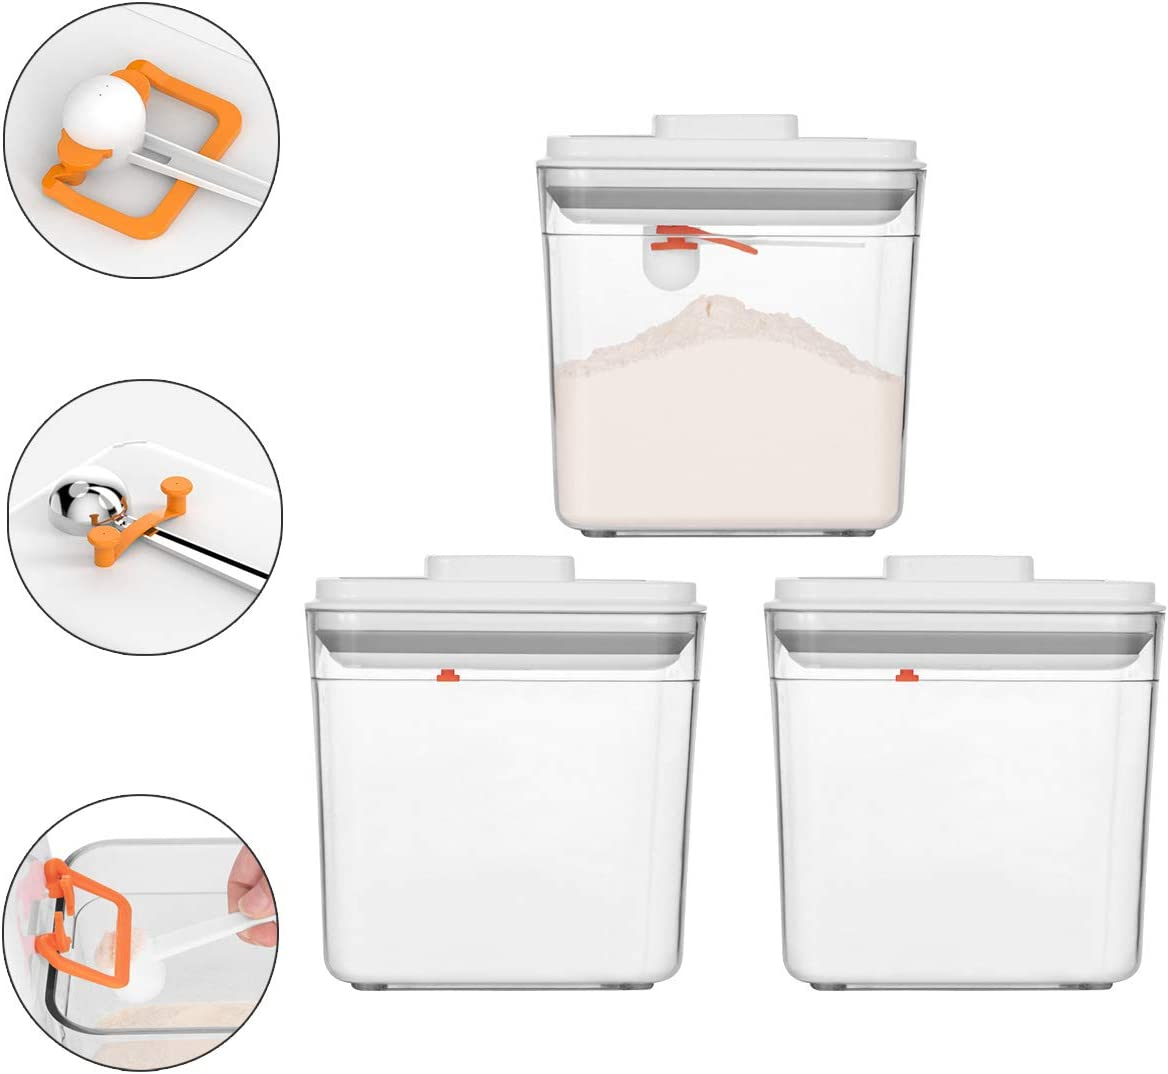 Vencer 3 Piece 58 oz (1700ML) Pop Up Air Tight Food Storage Containers with Airtight Lids and Free Scoop,Food Leveling Device,Pantry Space Saving Canisters